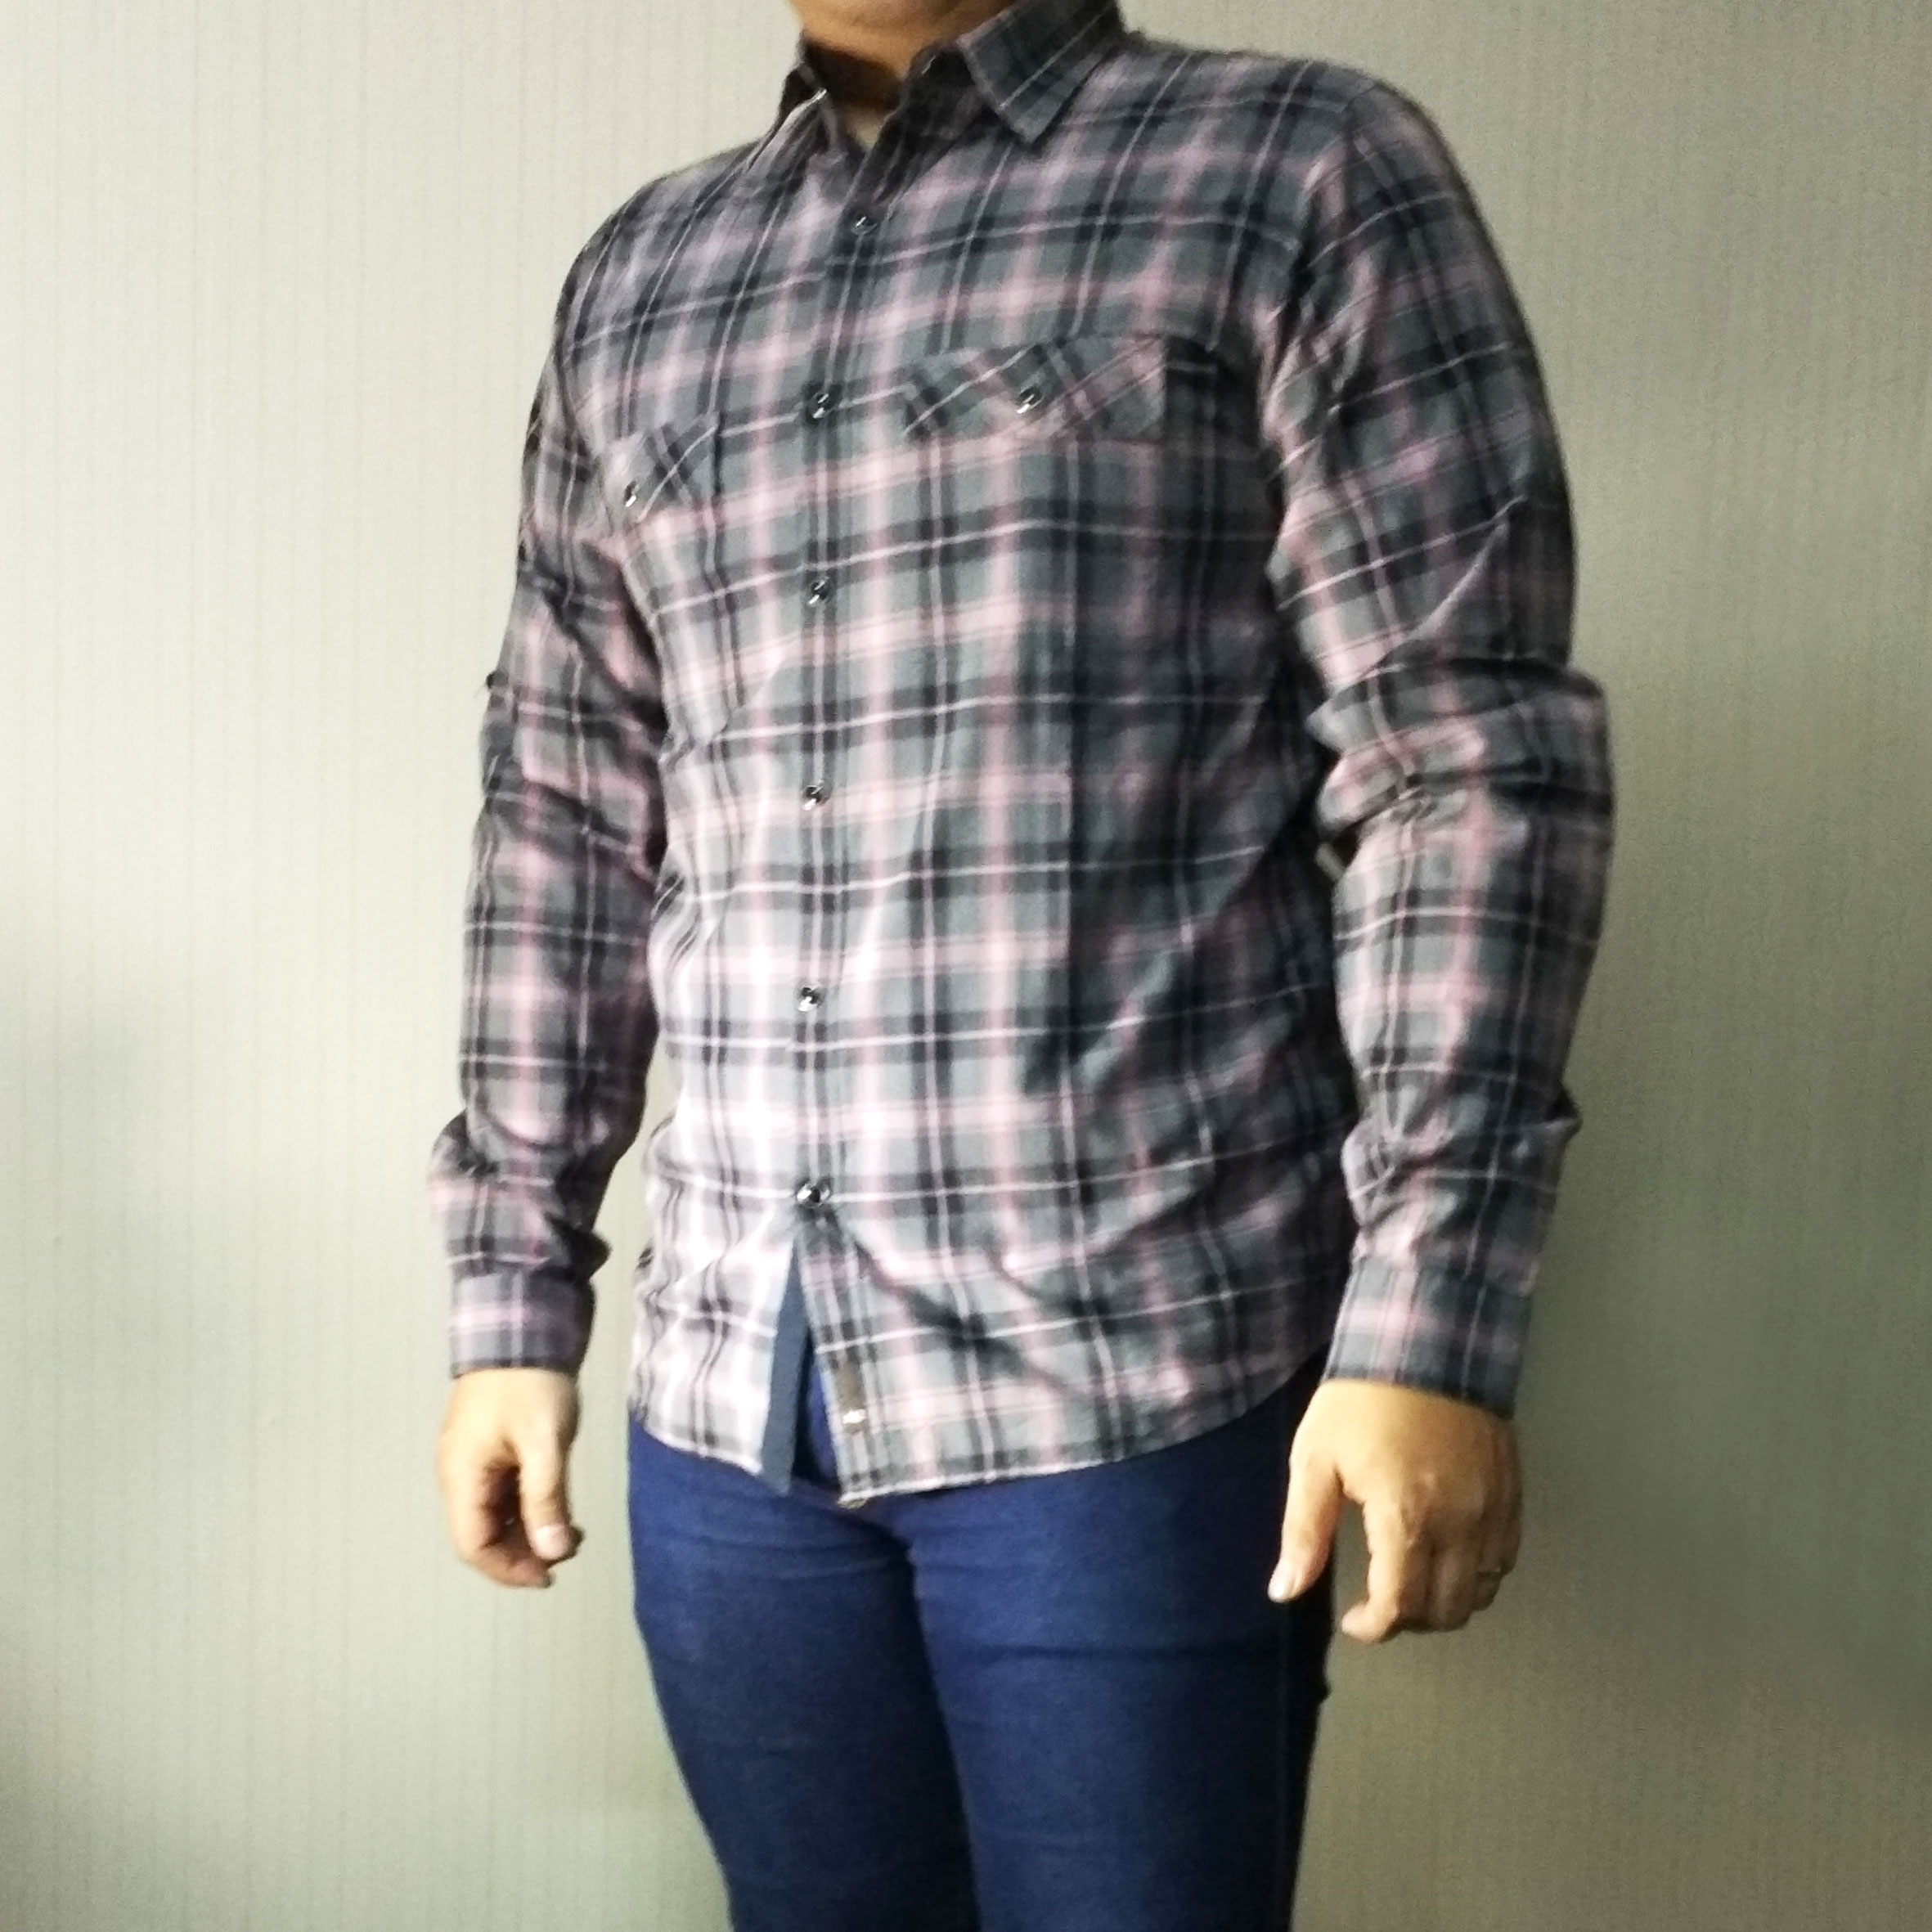 M2 Shirt - Slim Fit